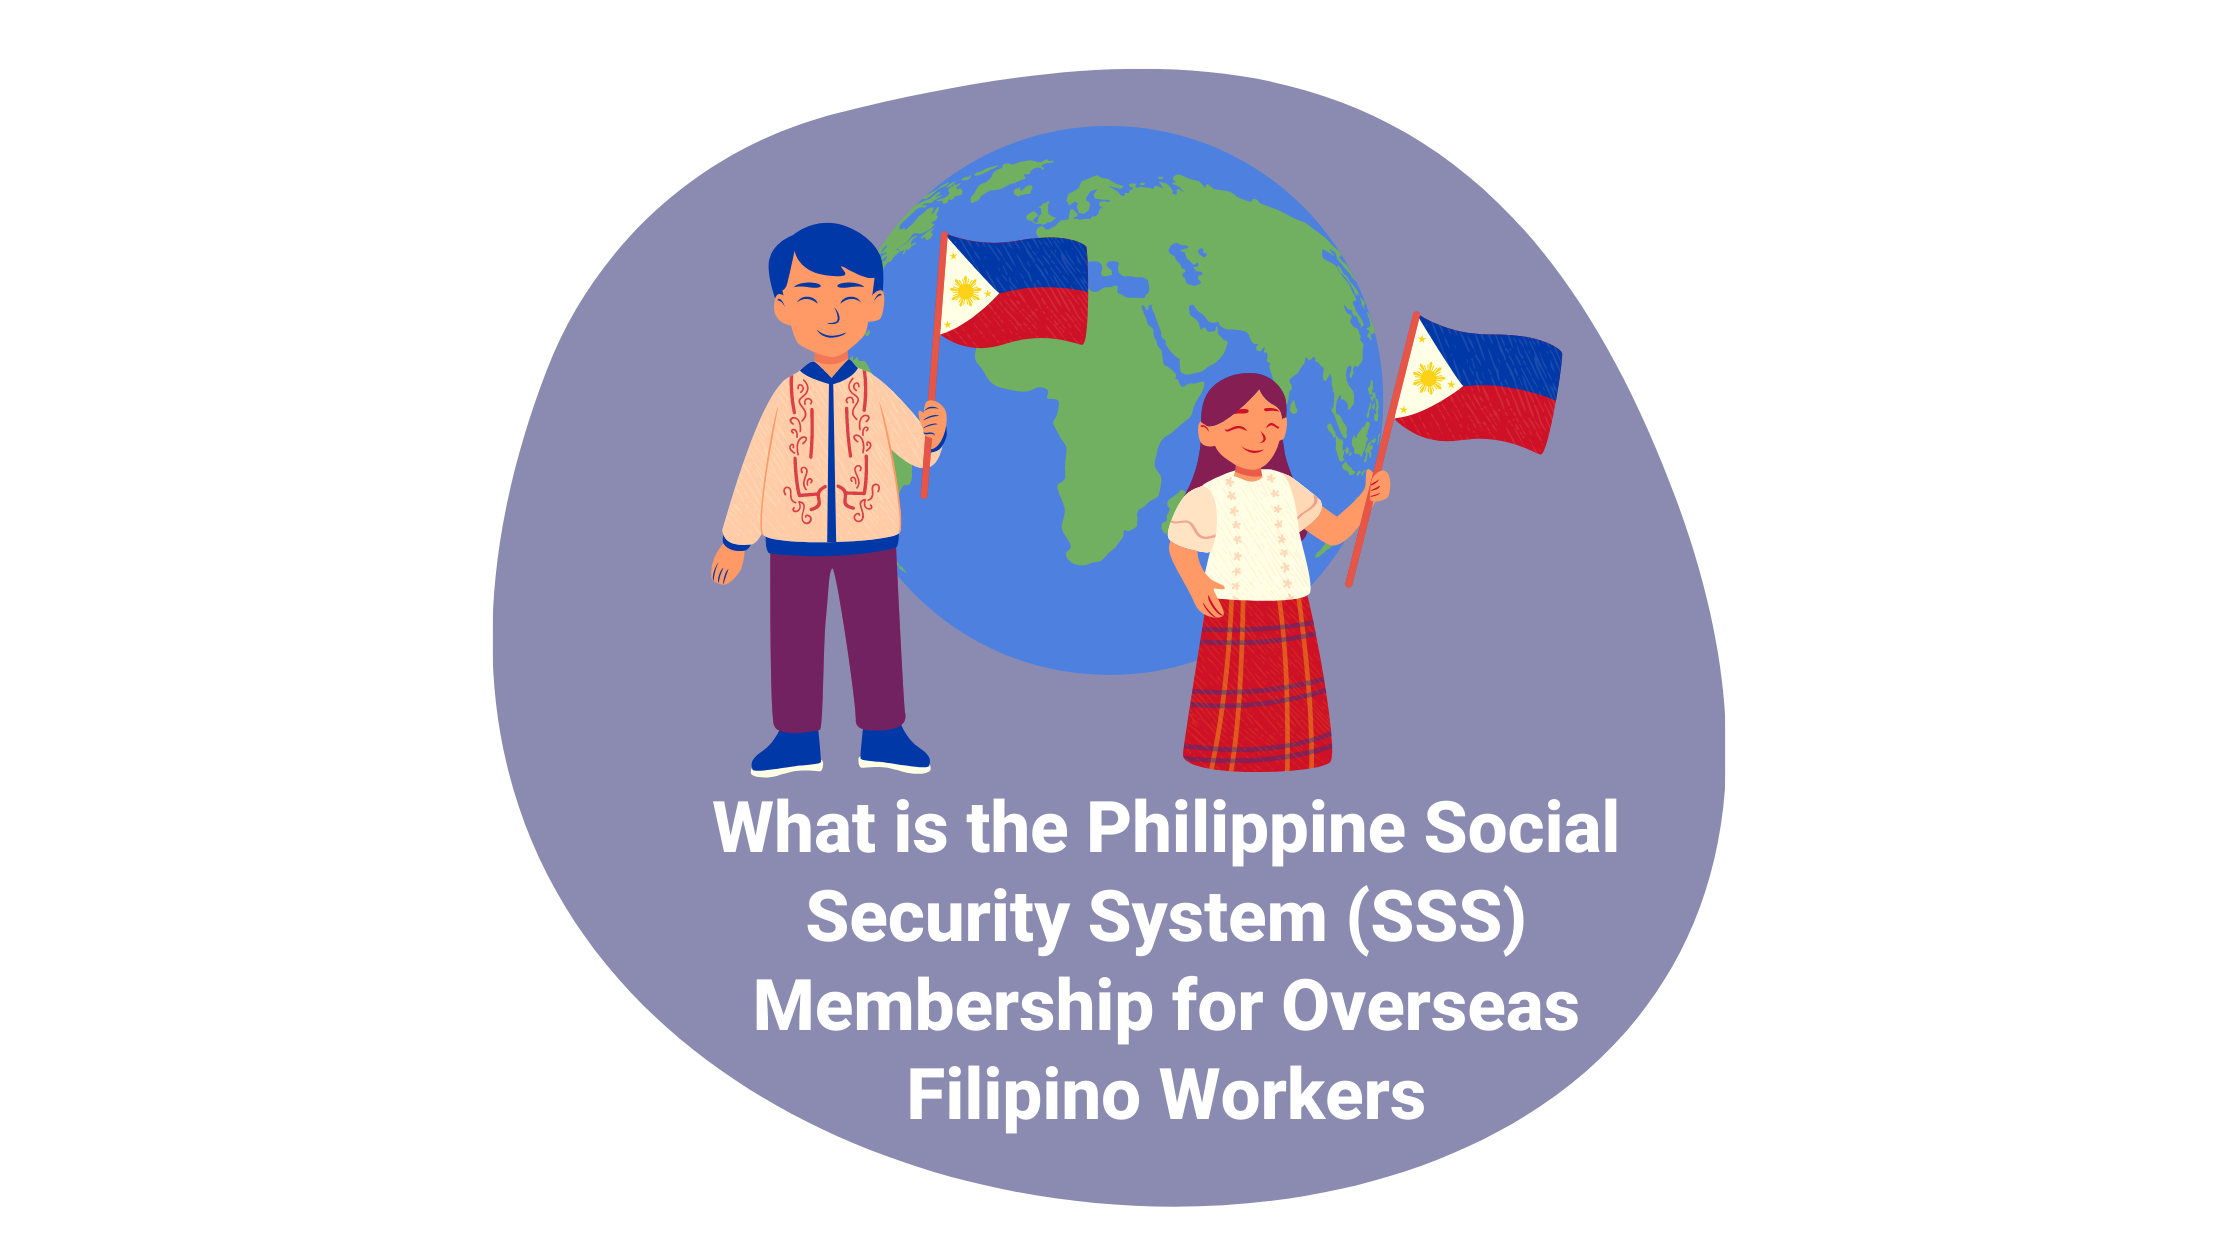 What is Philippine Social Security System (SSS) Membership for Overseas Filipino Workers (OFWs)?